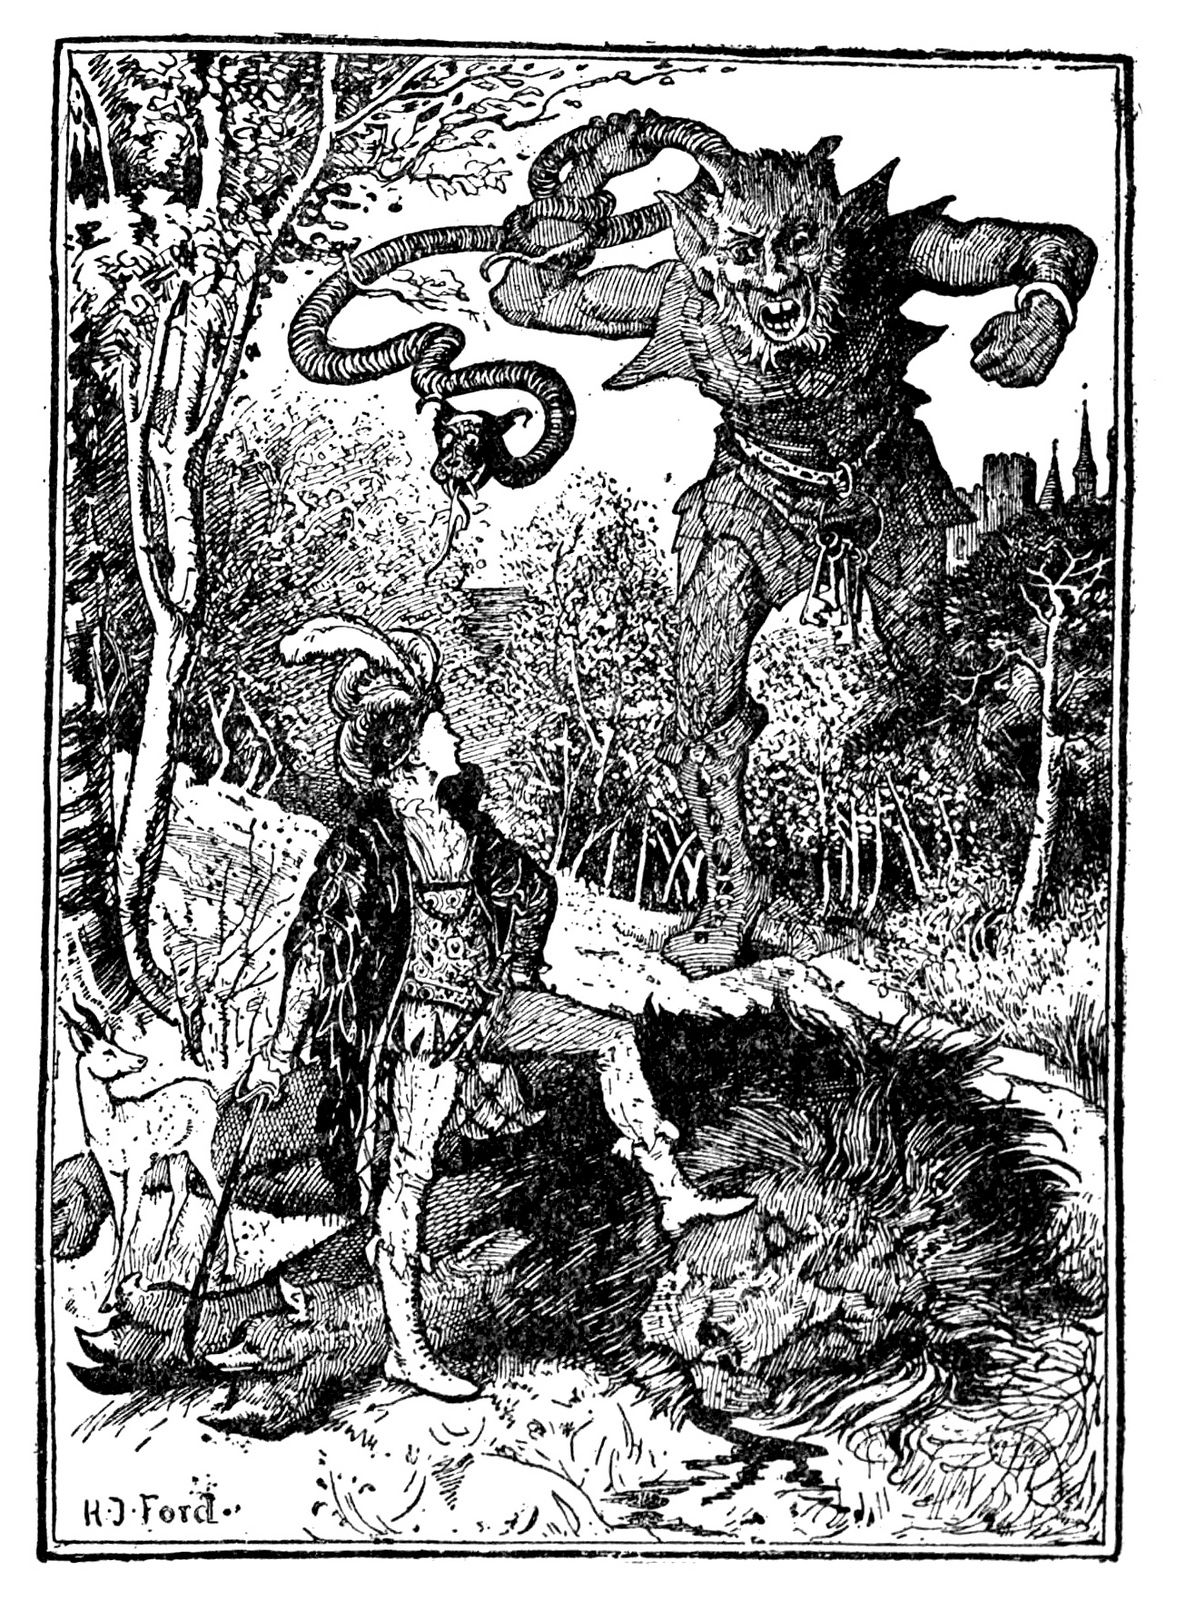 Henry Justice Ford - The green fairy book, edited by Andrew